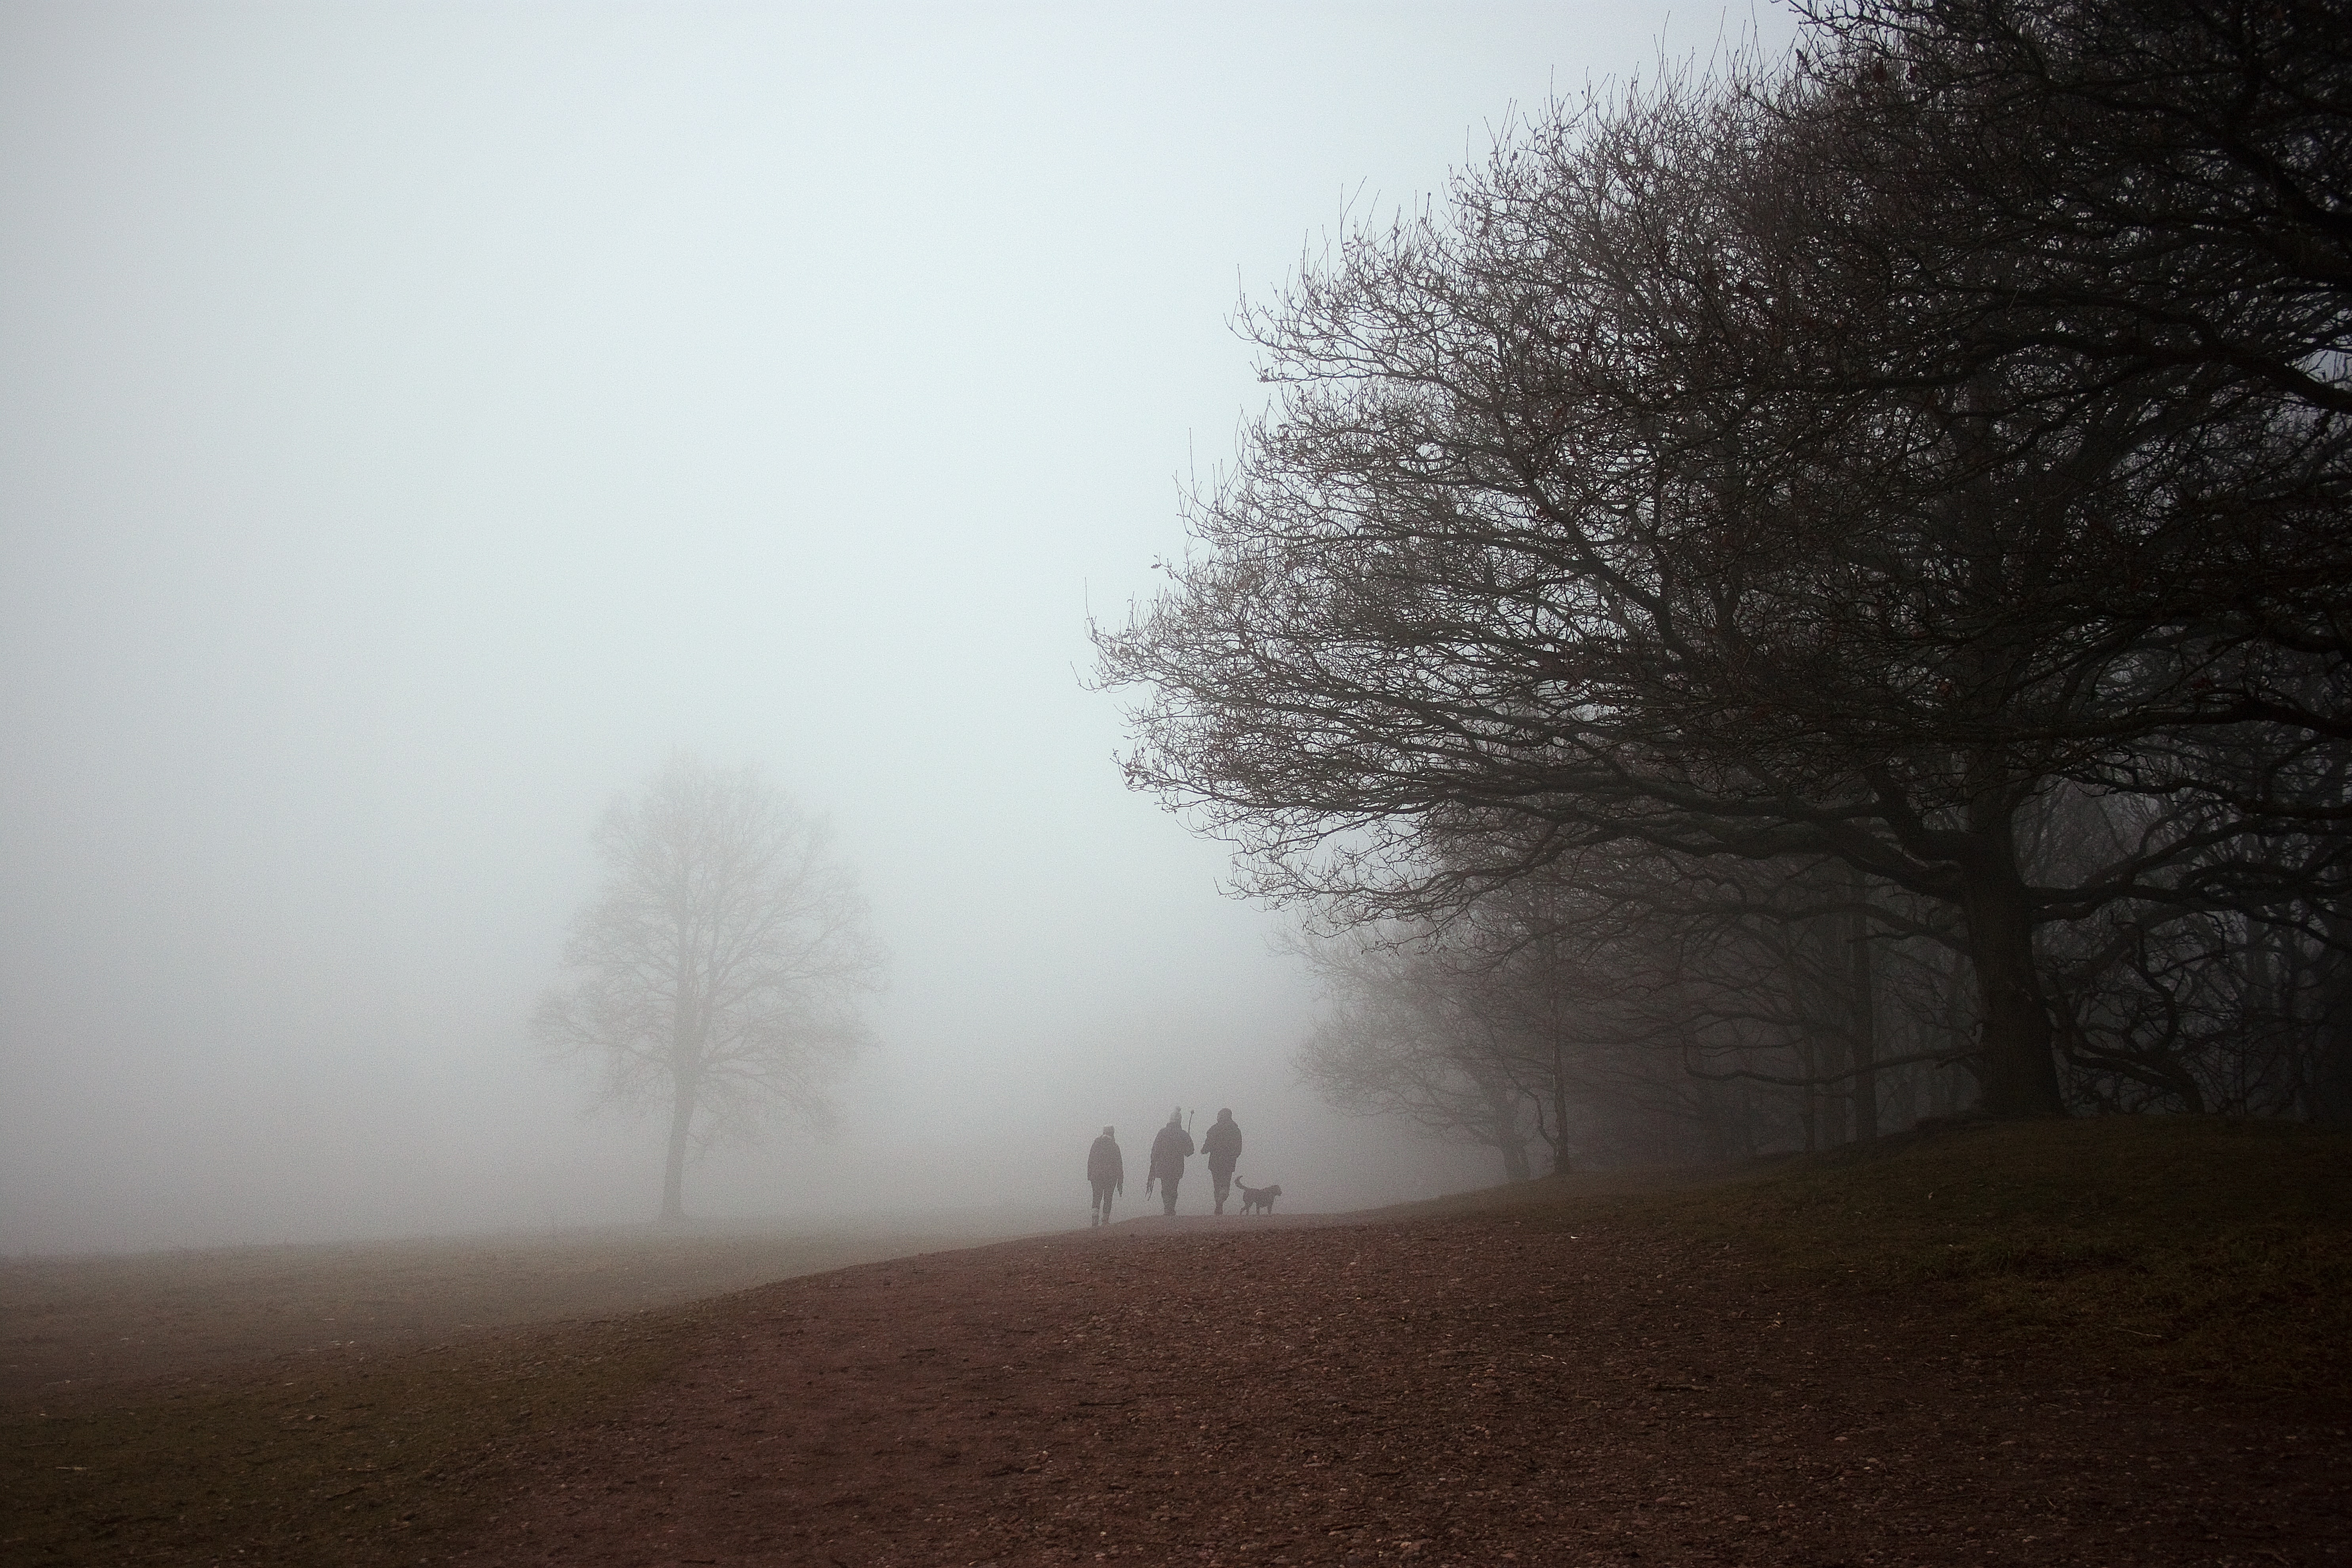 silhouette of 3 person on fog